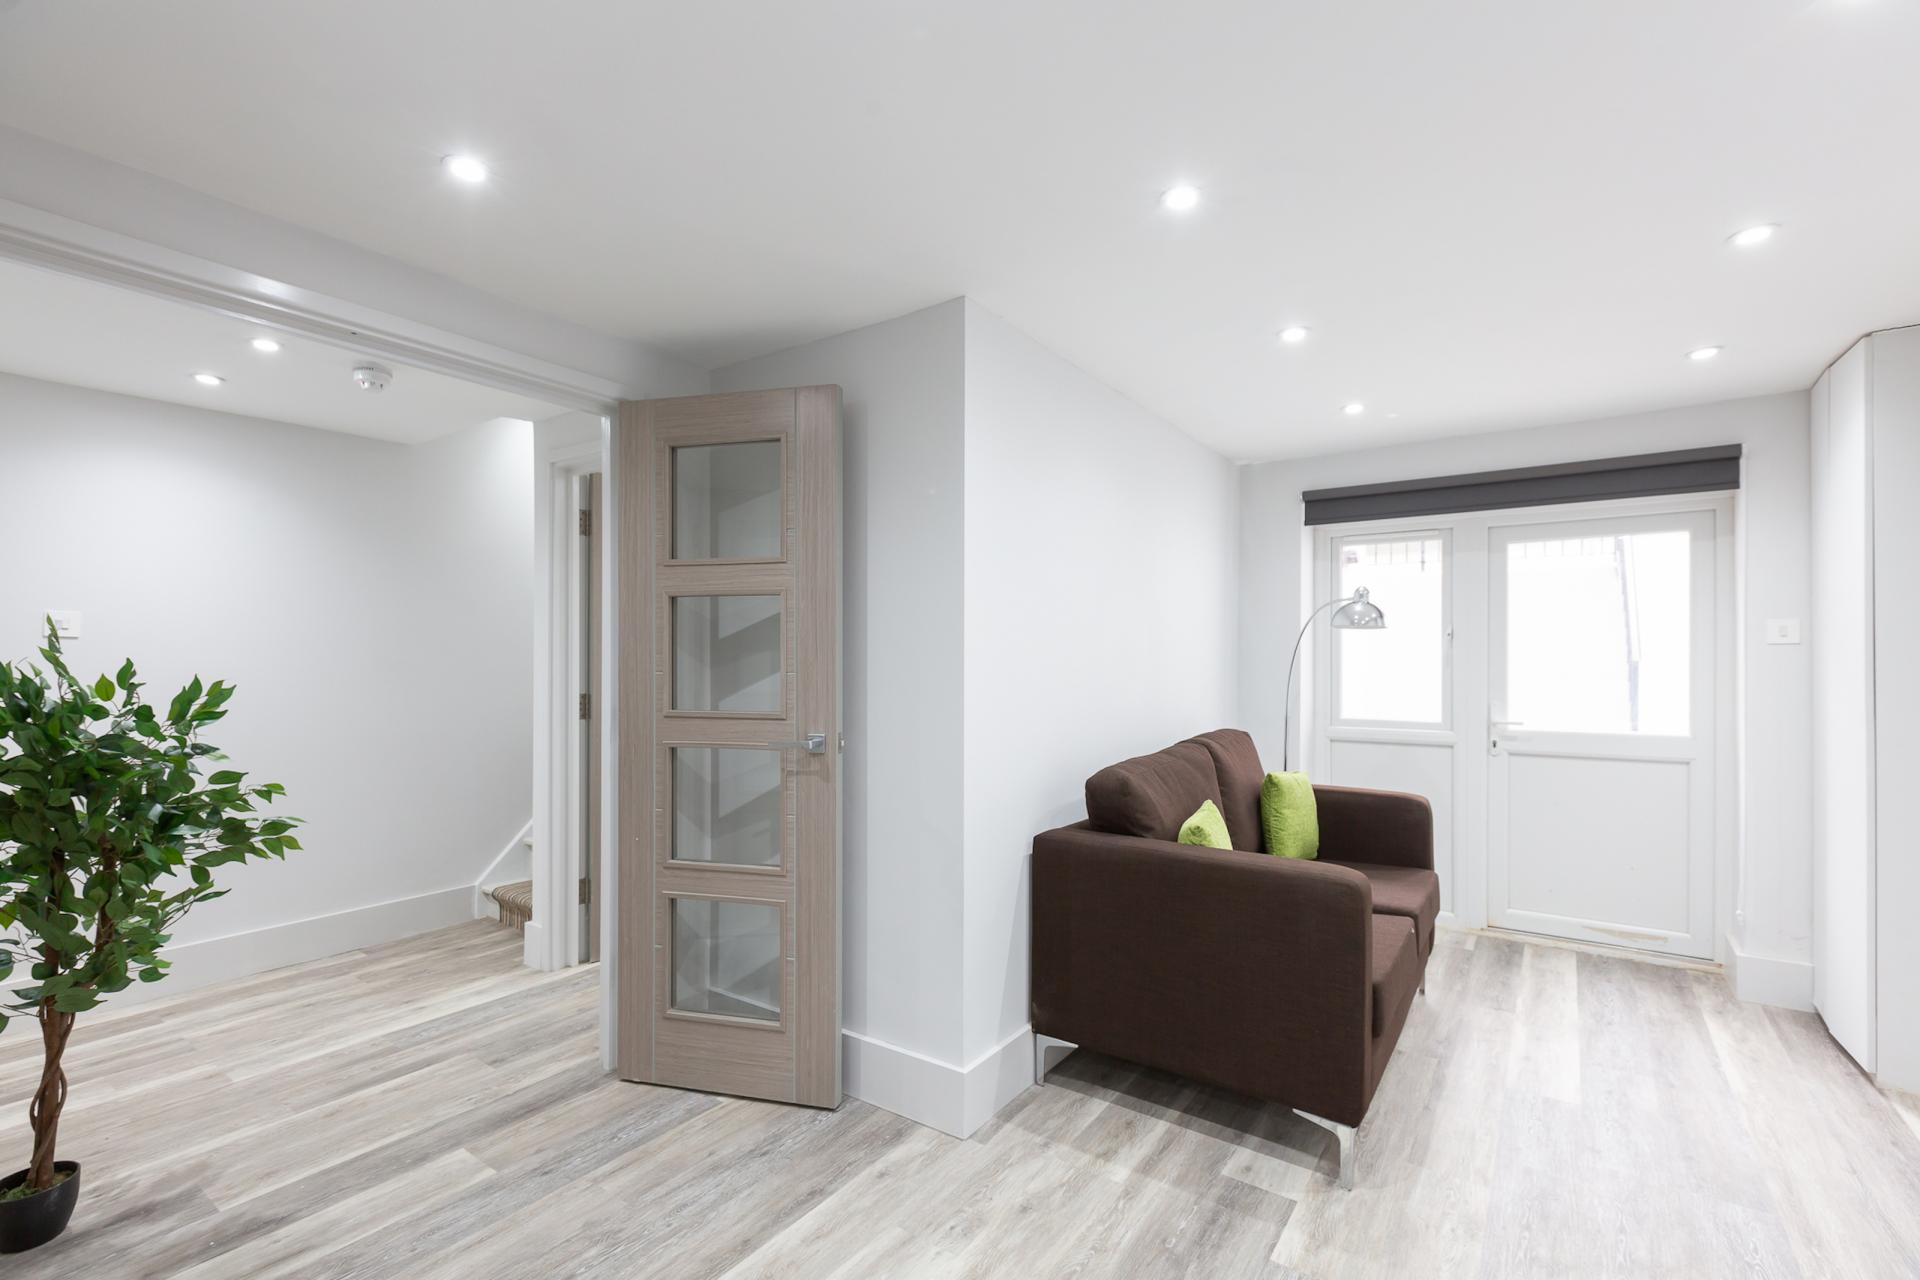 Living Room at Harrow Road Apartments, Westbourne Green, London - Citybase Apartments